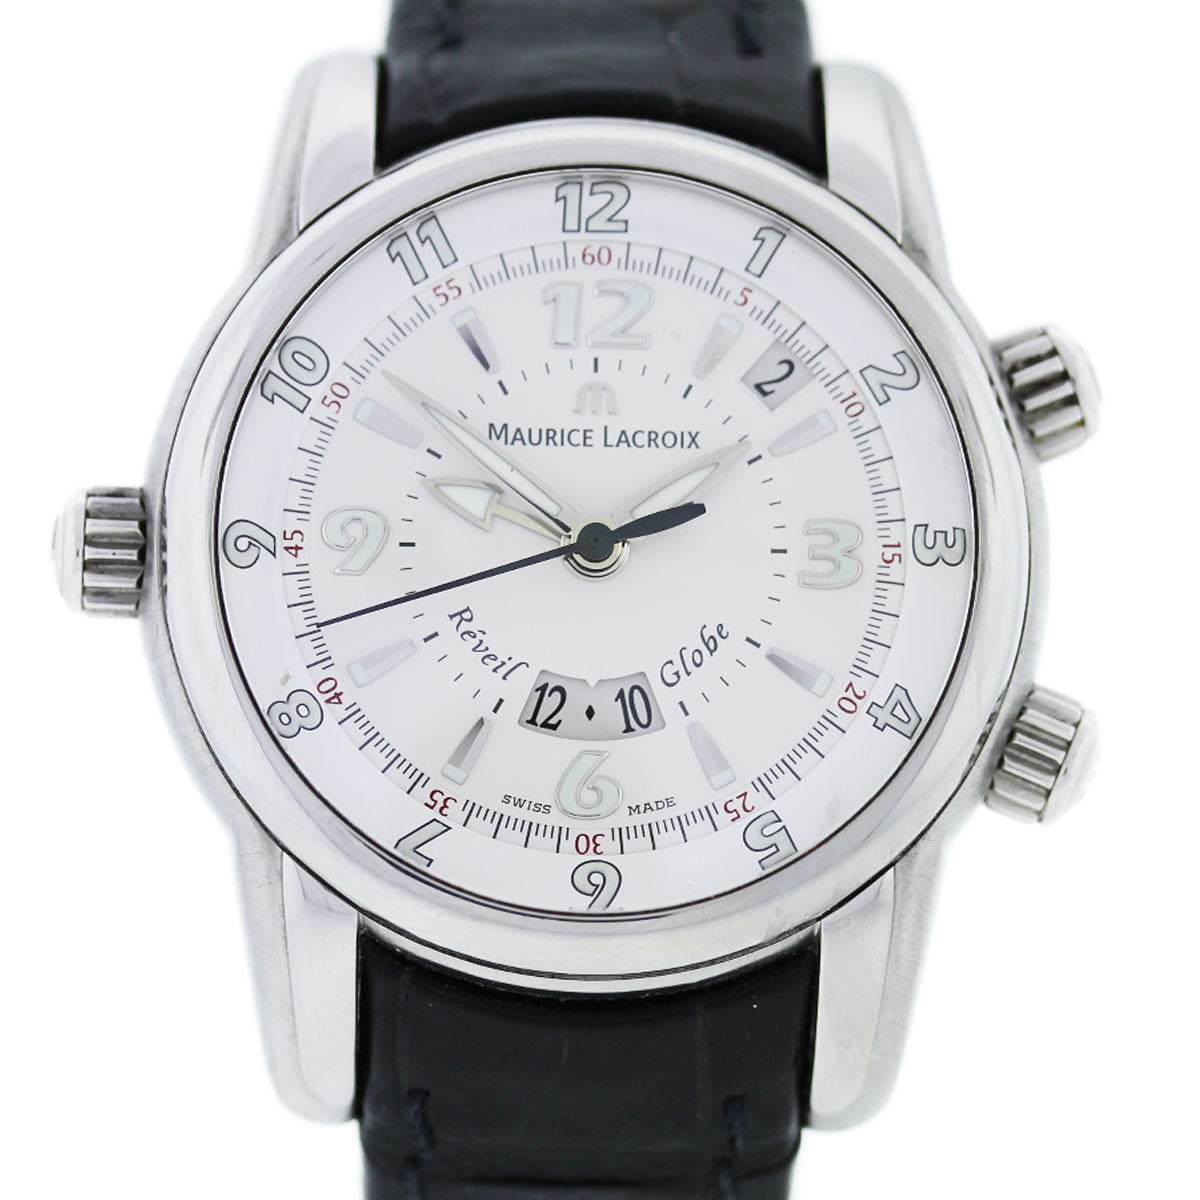 You are viewing this Maurice Lacroix MP6388 Reveil Globe Stainless Steel Gents Watch!